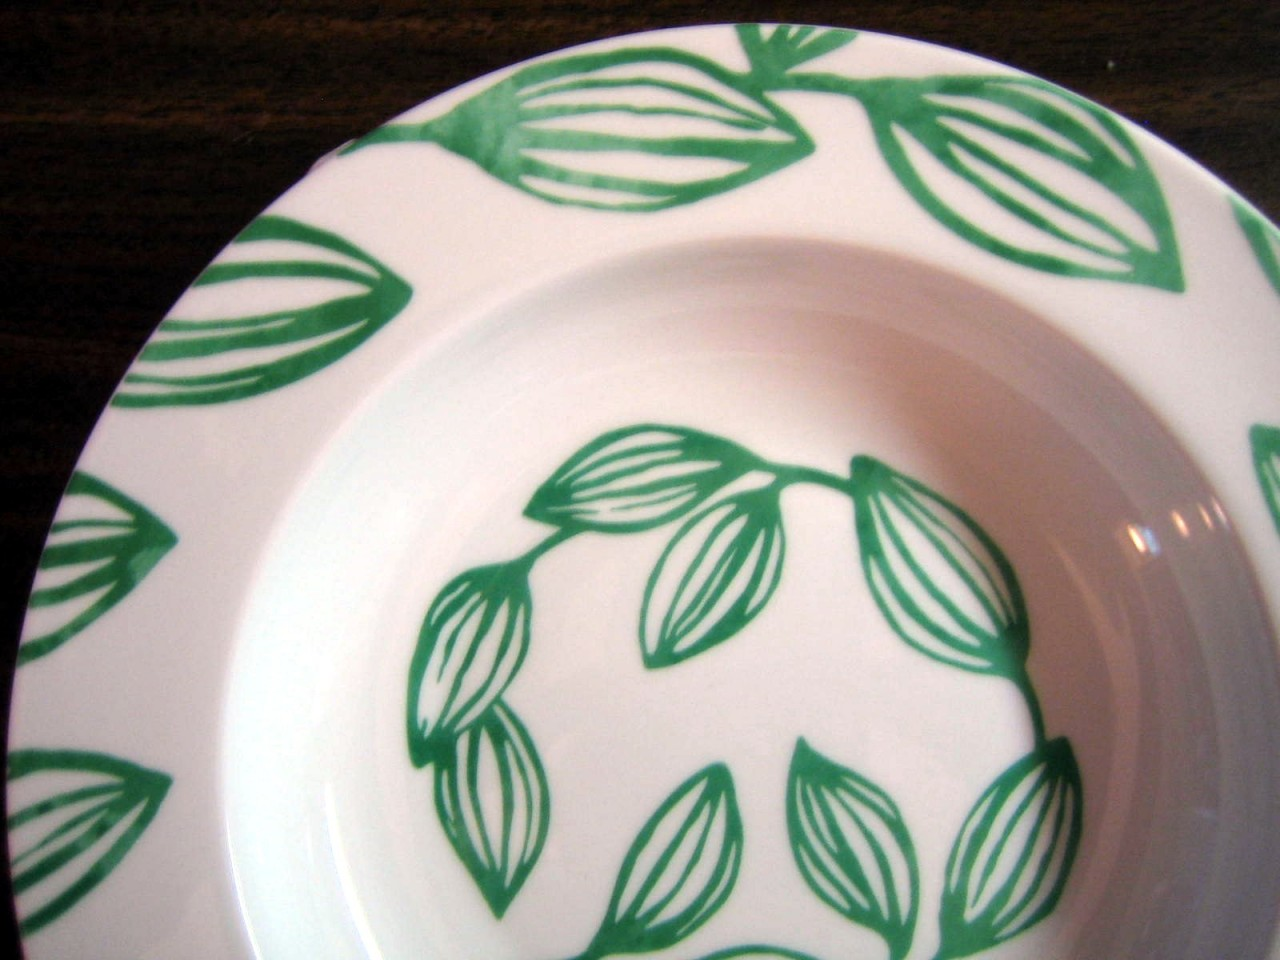 Decorative Flat Bowl Plate - White Shiny Glaze Emerald Green Leaf Tendrils Edge www.DecorativeDishes.net